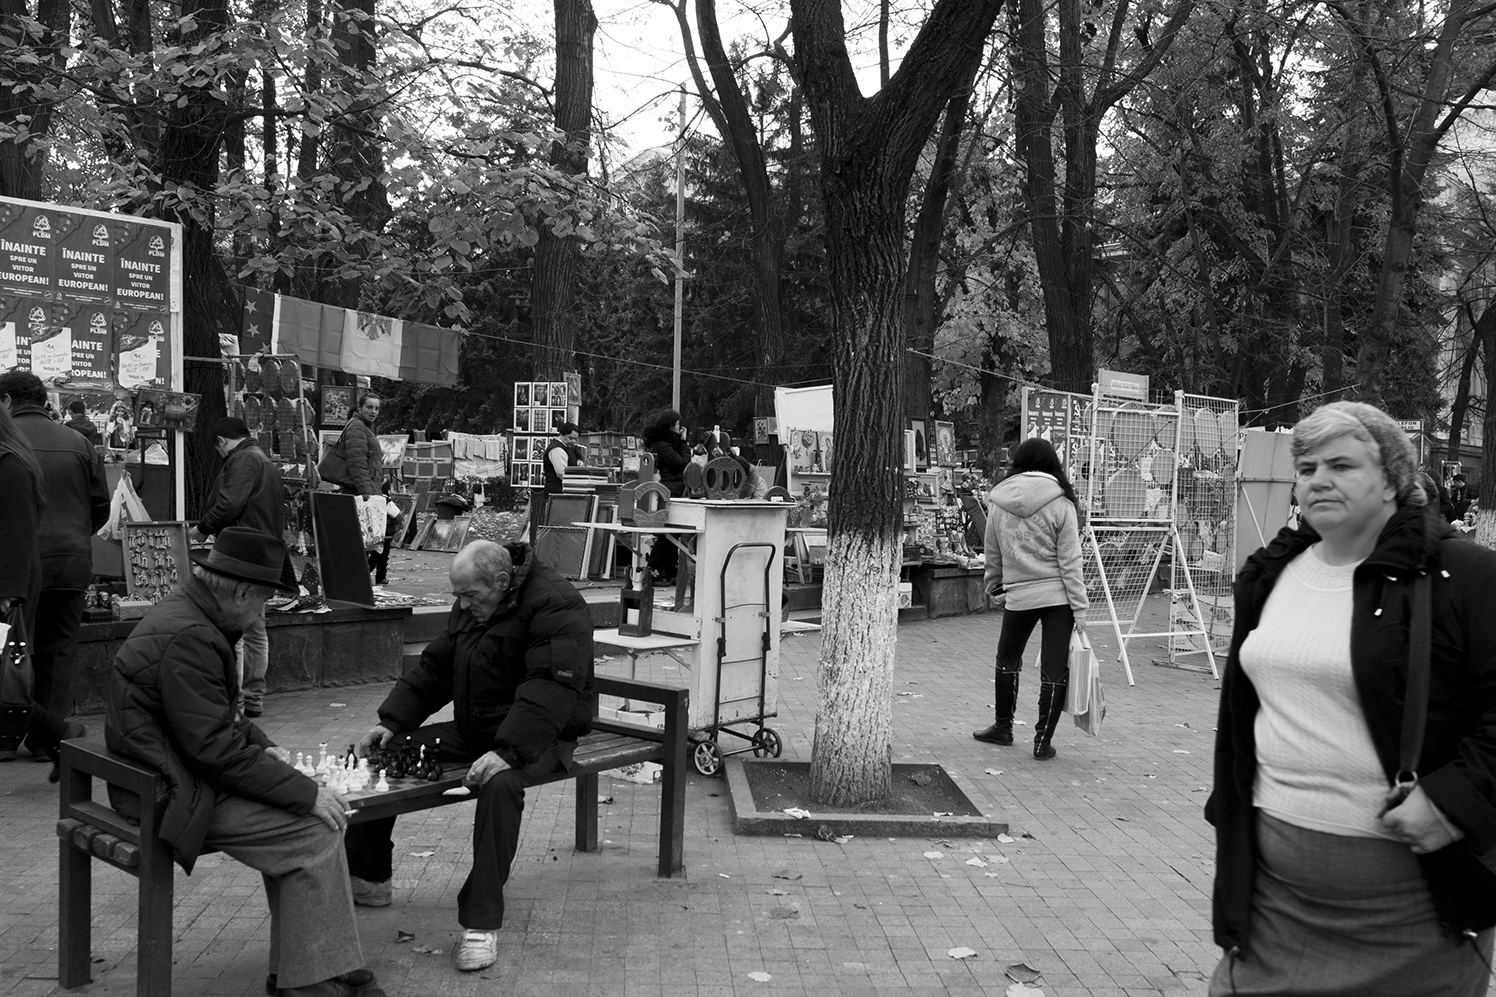 Old men playing chess on bench in fornt of the souvenir market